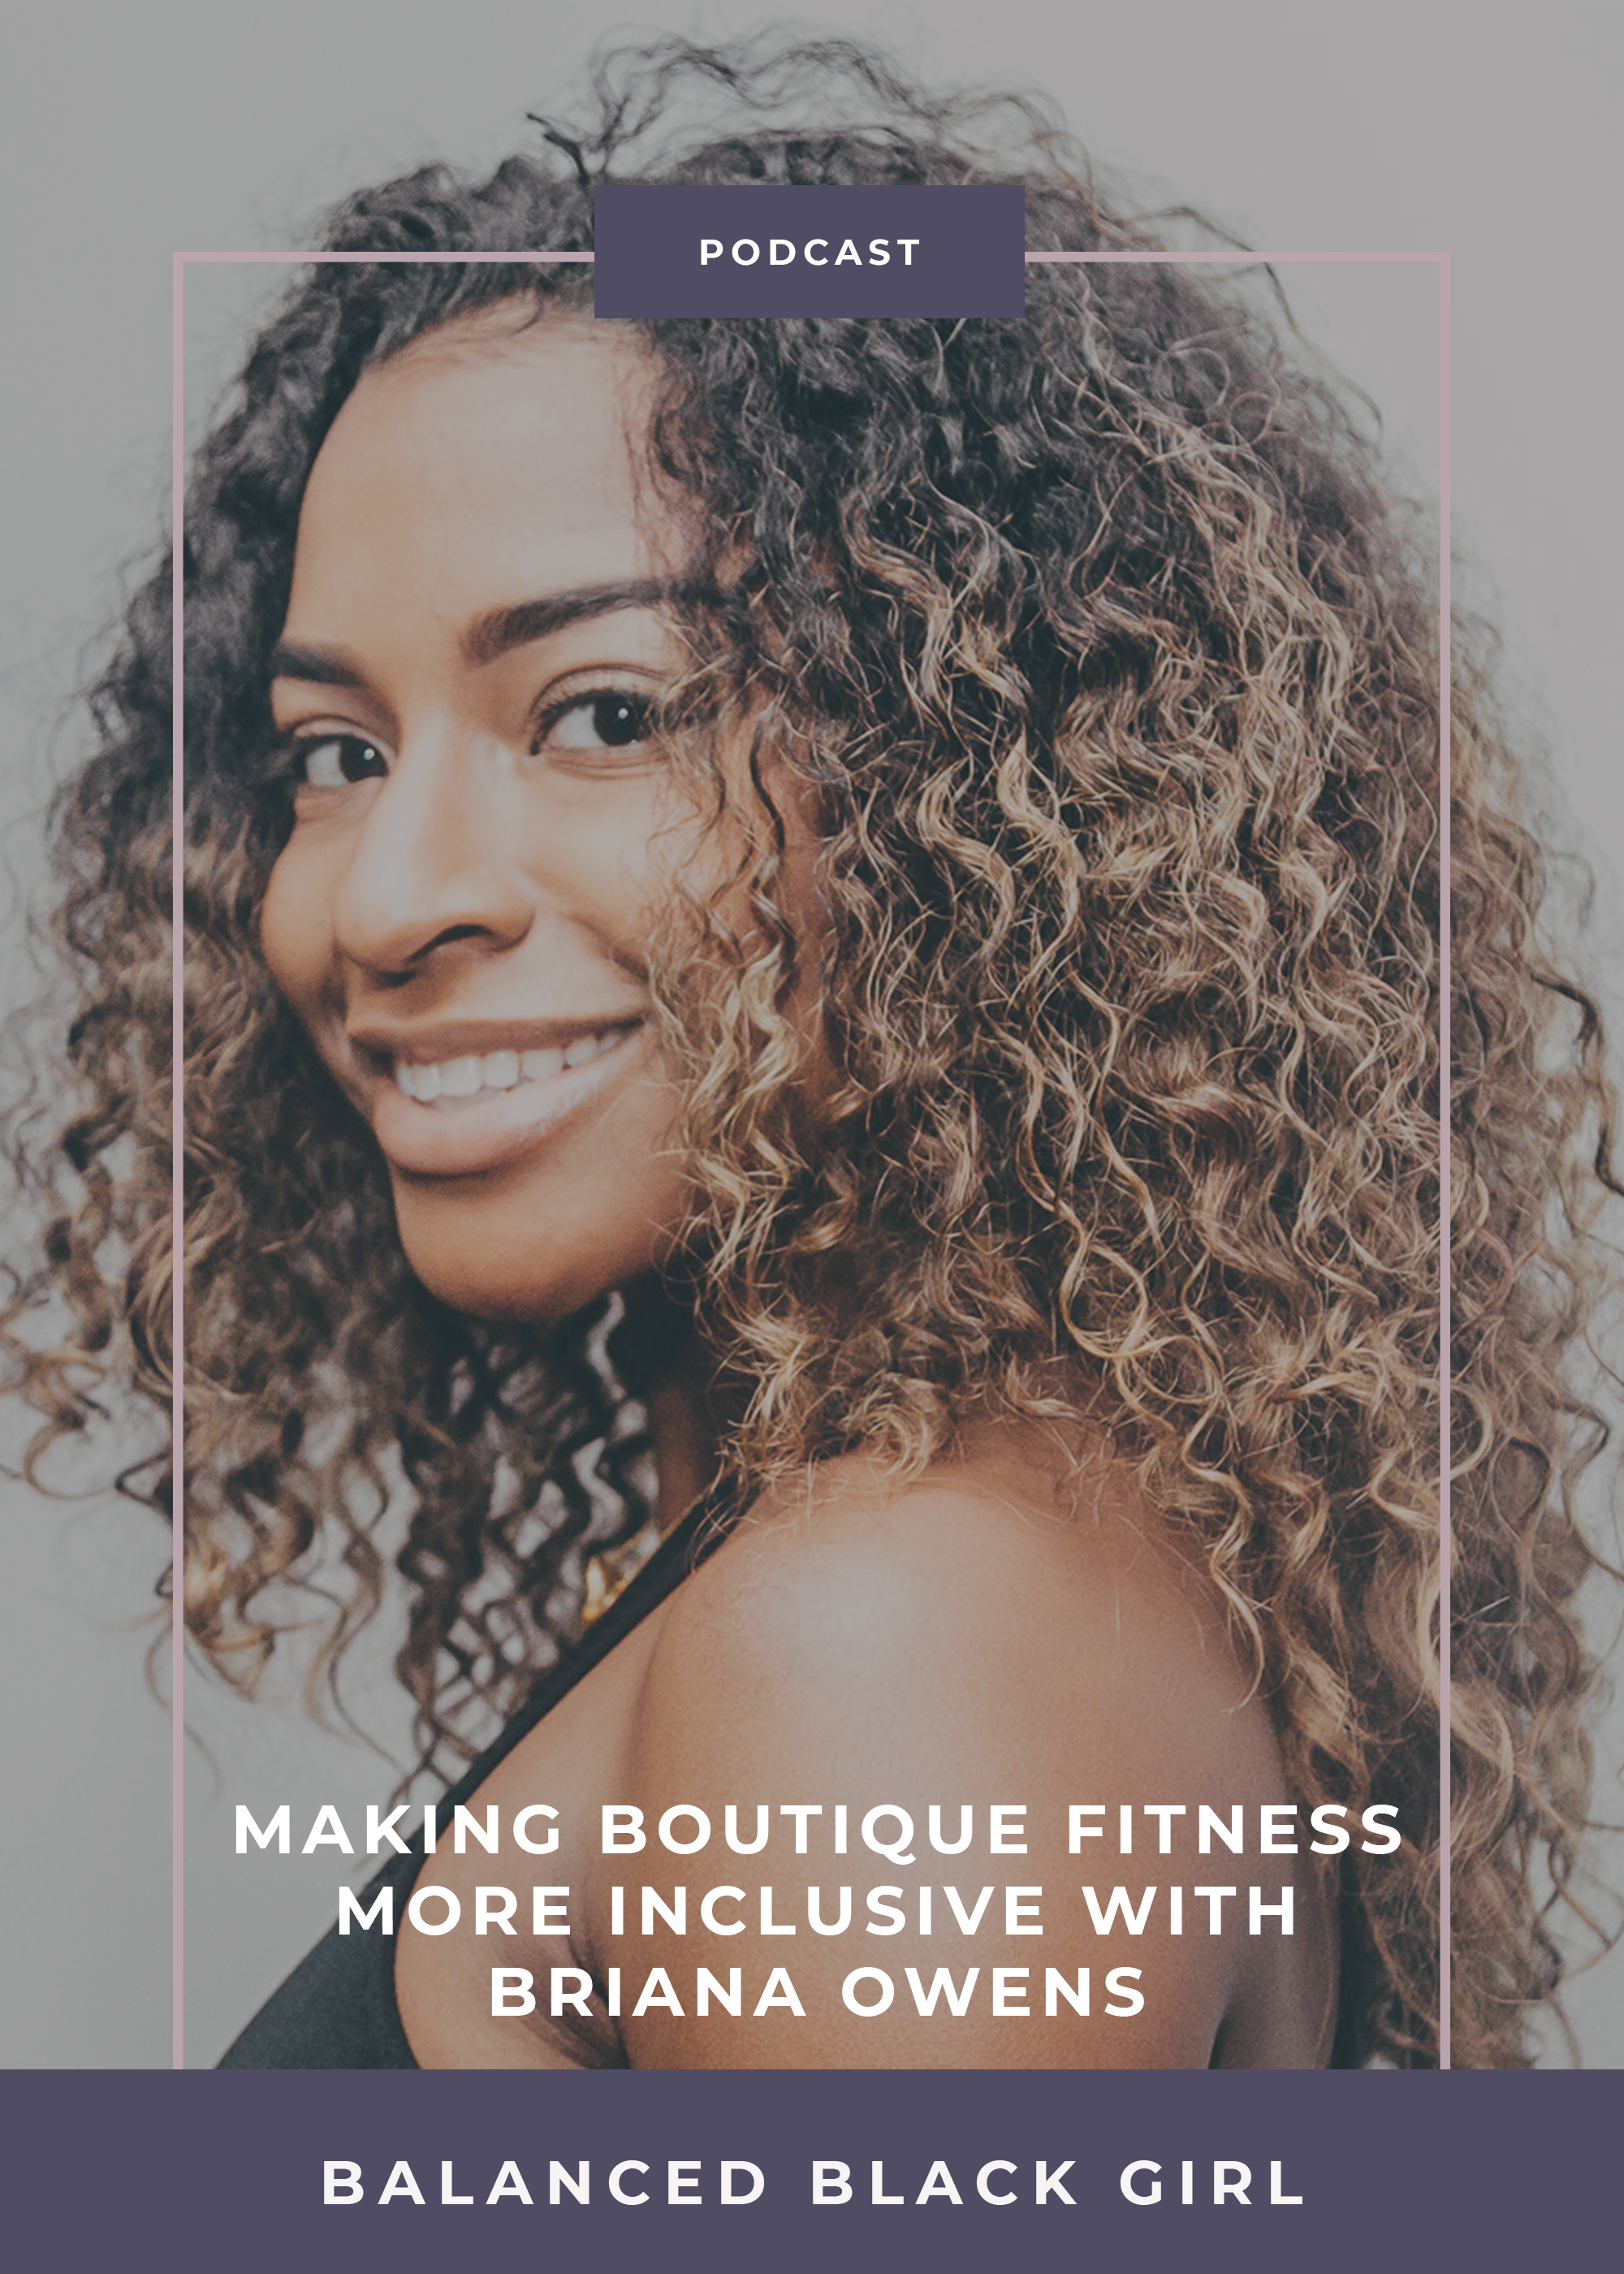 In this episode of Balanced Black Girl Podcast, we talk about ways to make boutique fitness more inclusive with Briana Owens of Spiked Spin.